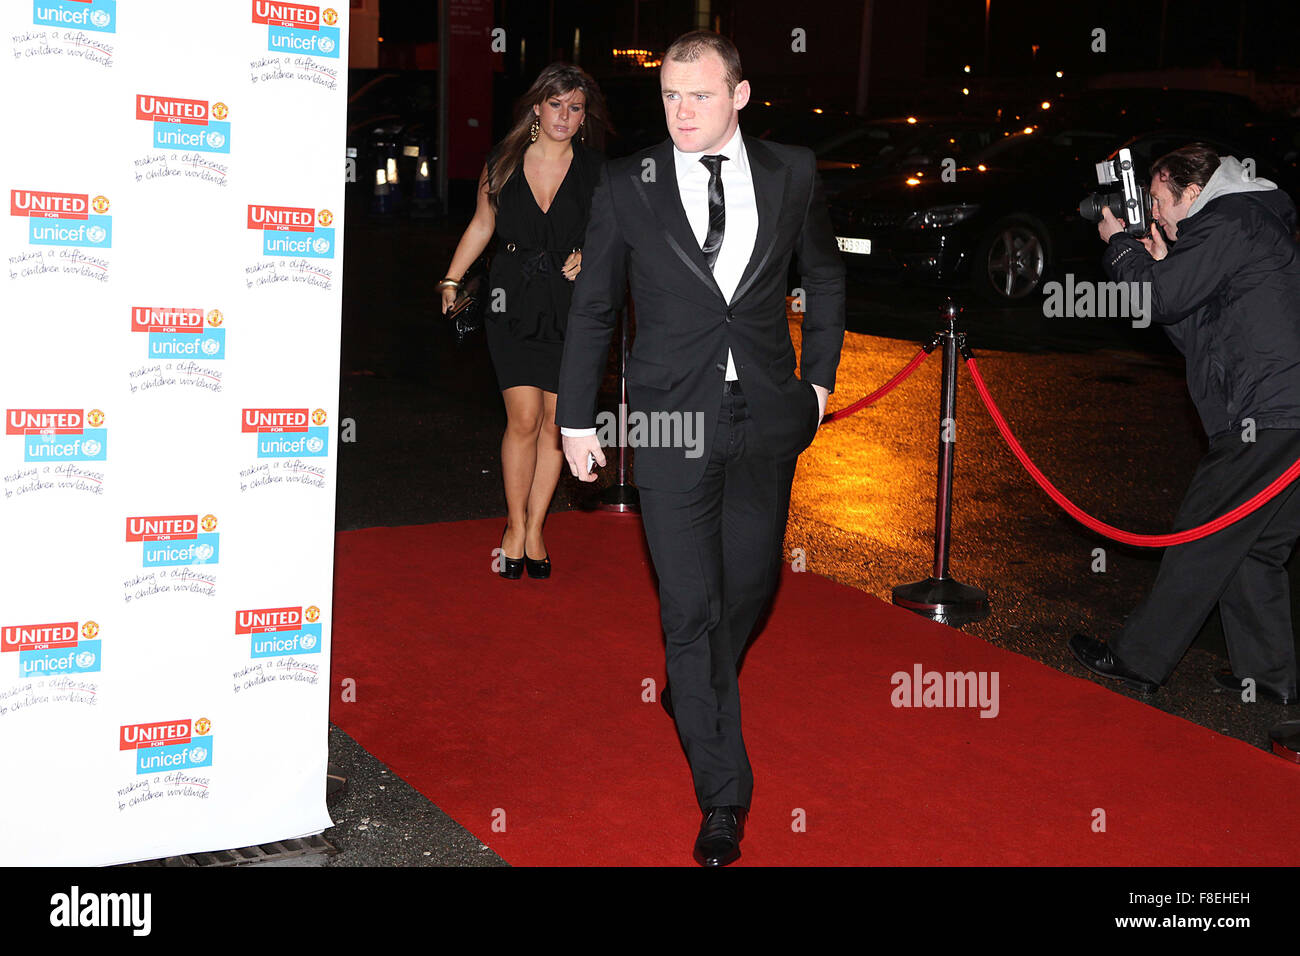 United for UNICEF red carpet at Old Trafford .wayne and coleen rooney - Stock Image